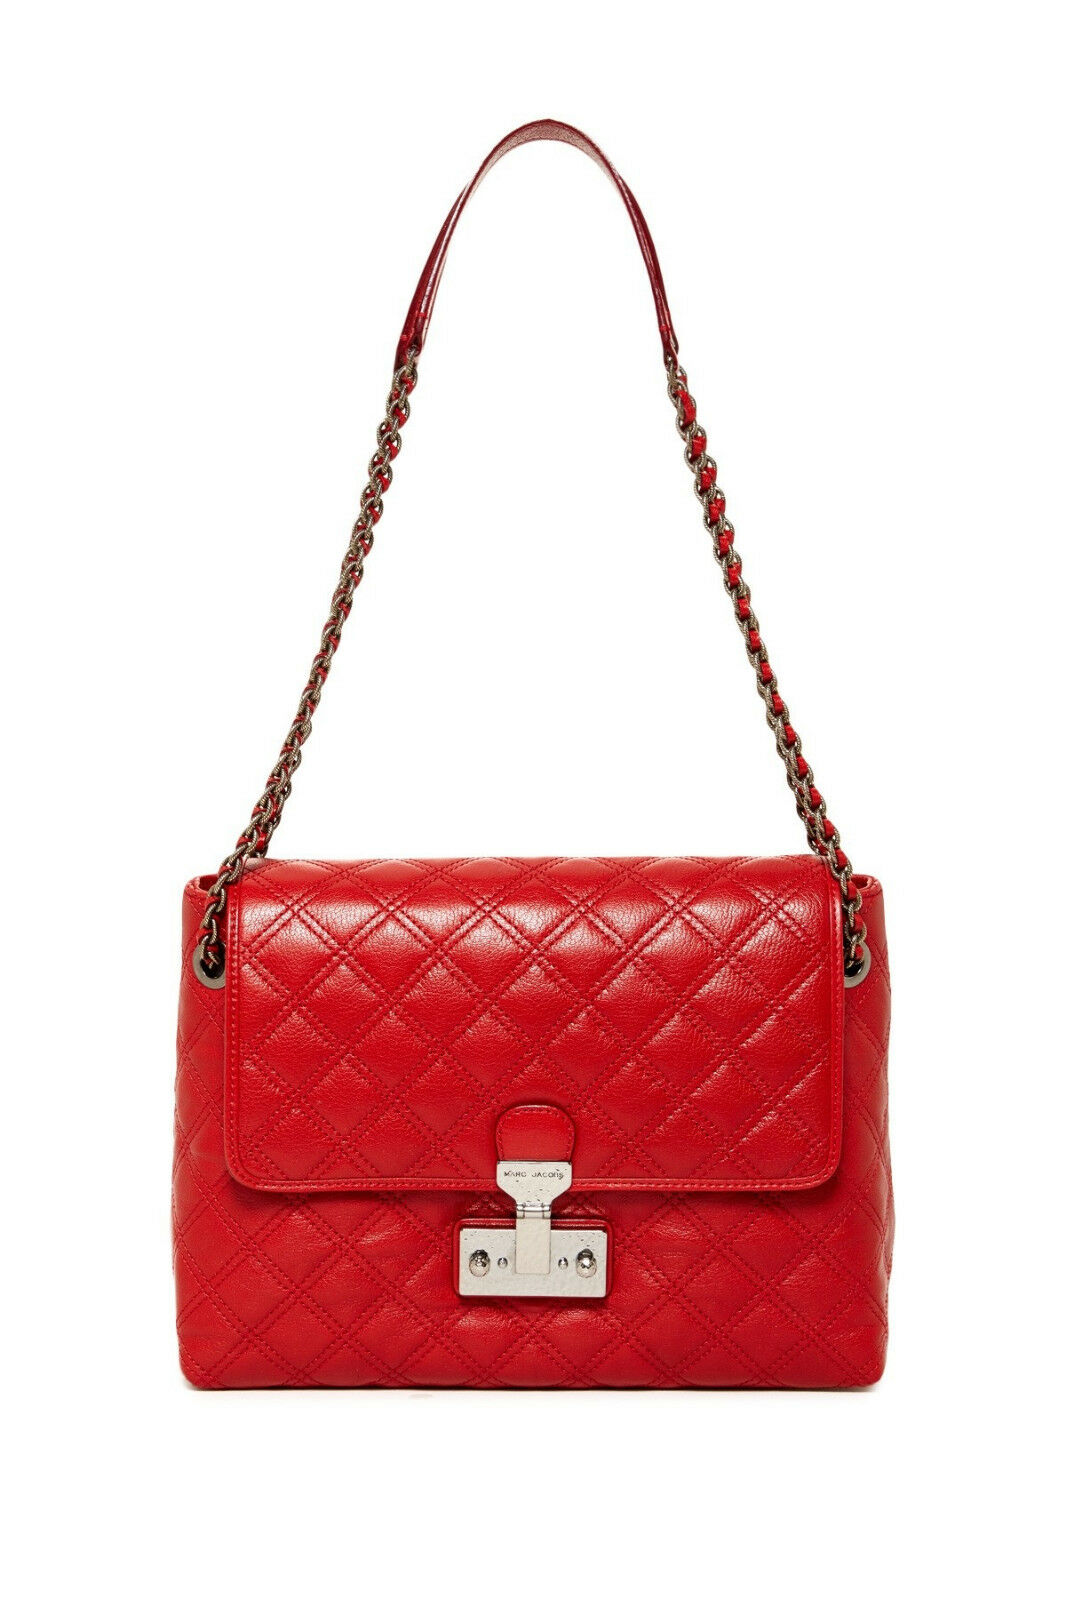 Marc Jacobs Baroque XL Single Quilted Leather Shoulder Bag Cherry ... : marc jacobs single quilted bag - Adamdwight.com